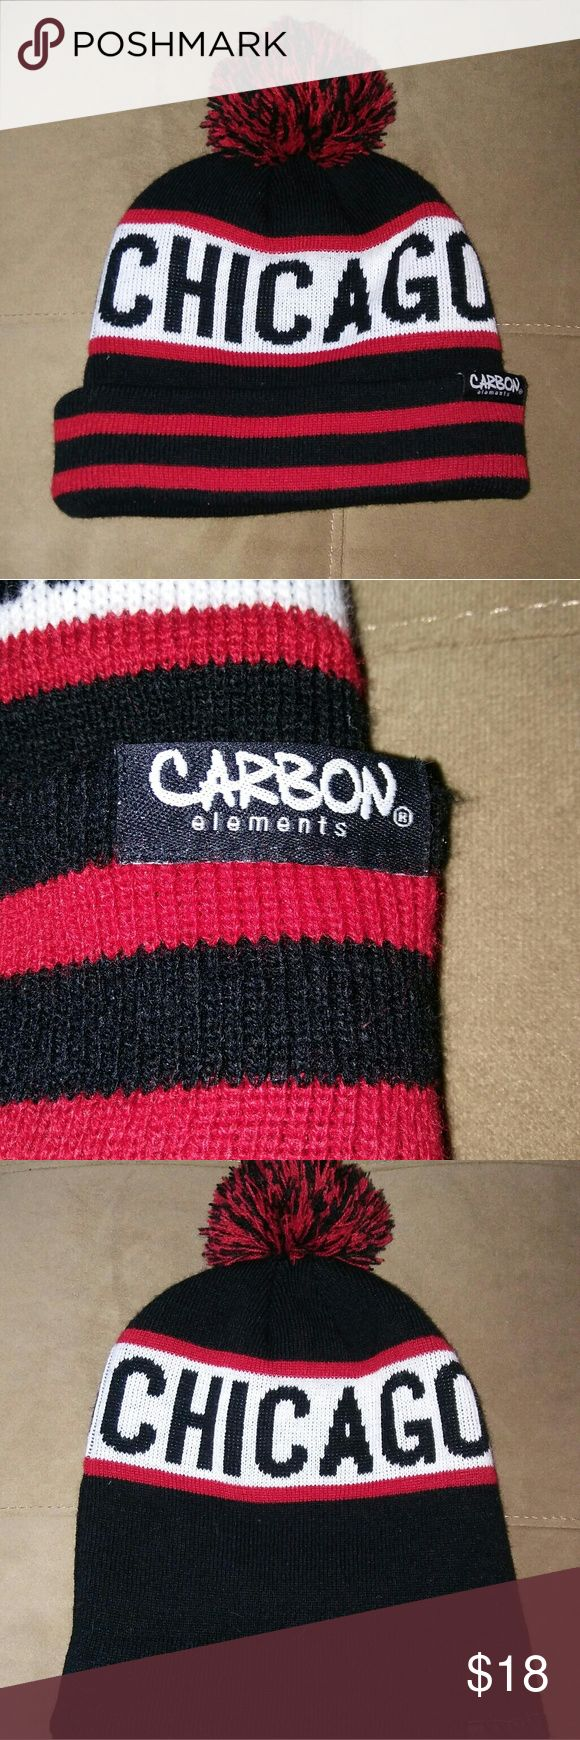 Carbon elements chicago beanie nwots Nwots Chicago Windy City Pom Winter Hat  Beanie Cap by carbon. Color is red, white and back. Excellent condition, one size. carbon elements Accessories Hats